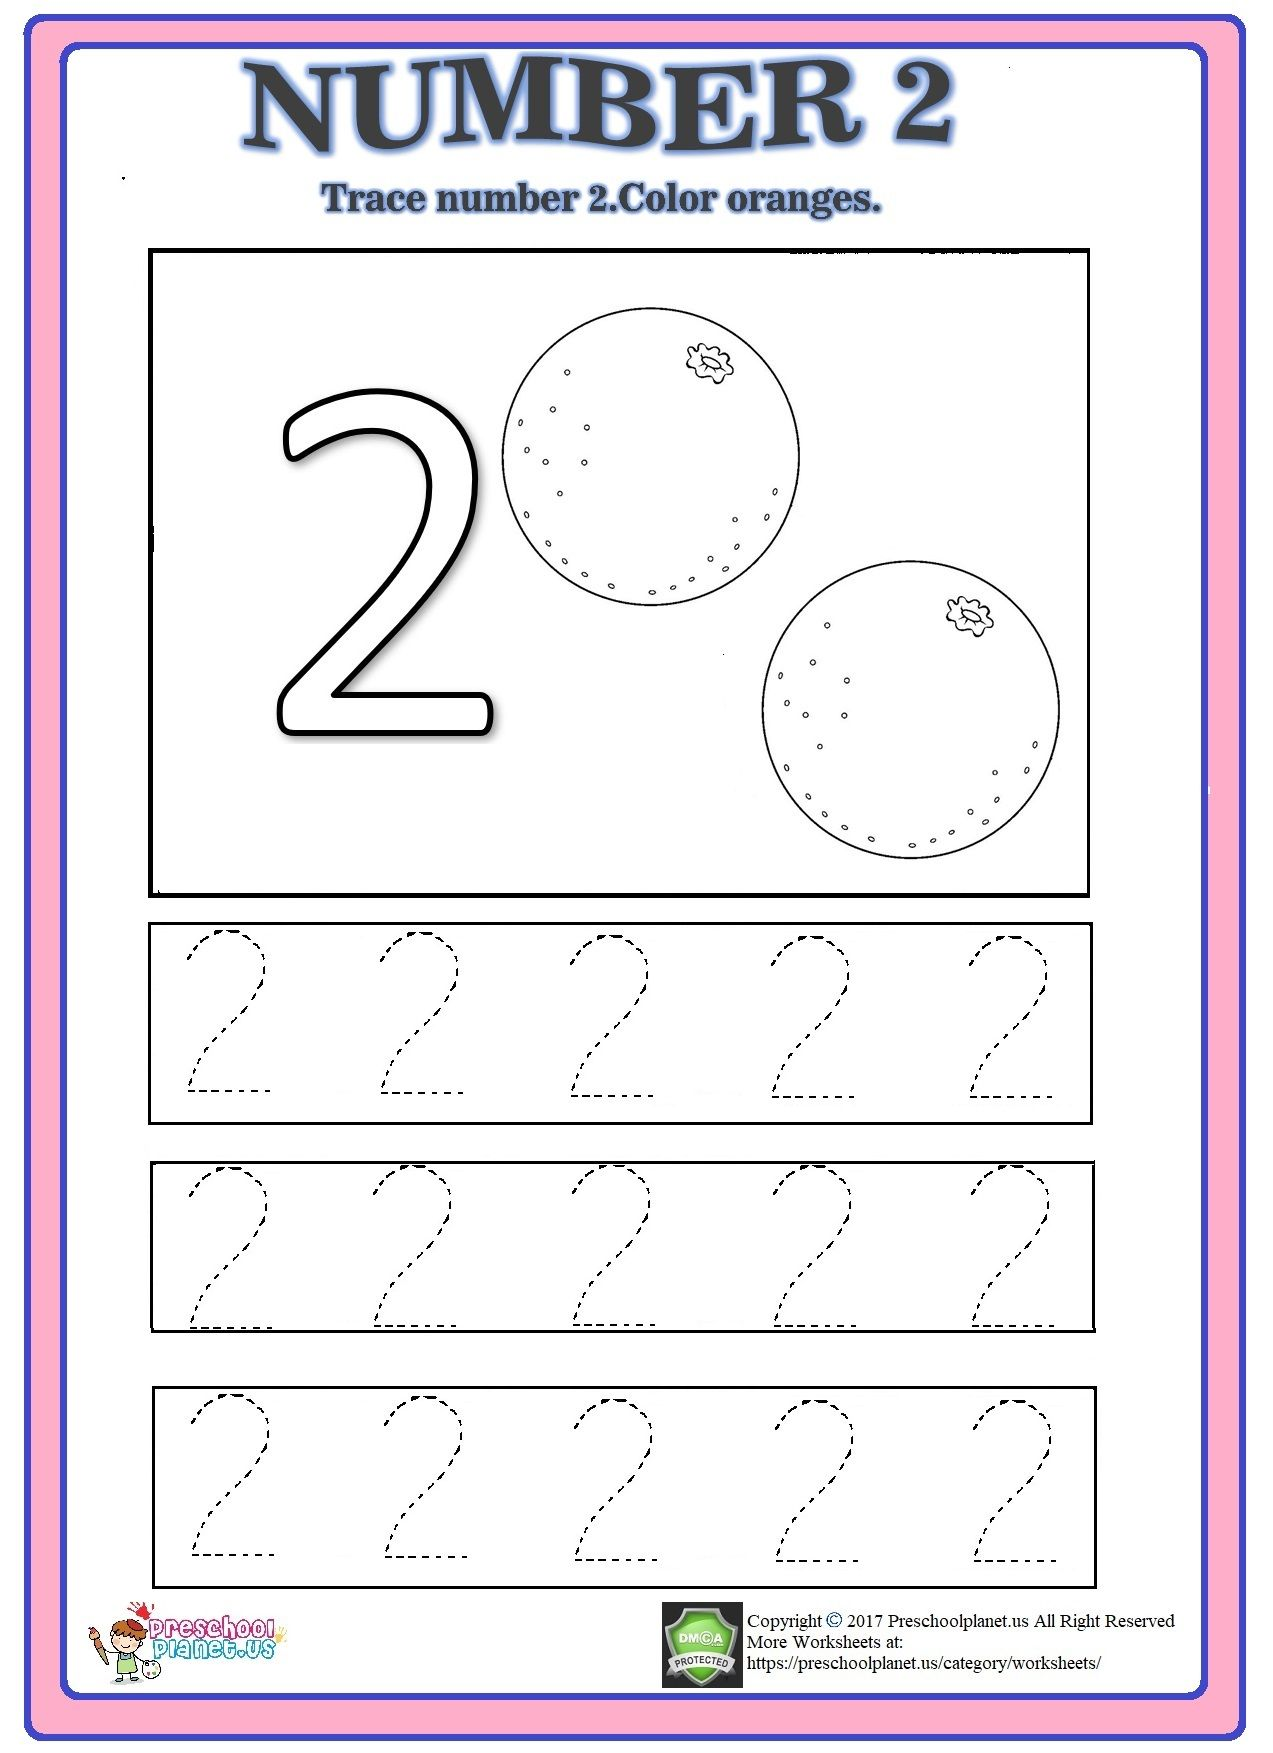 Number 2 Worksheets For Preschoolers